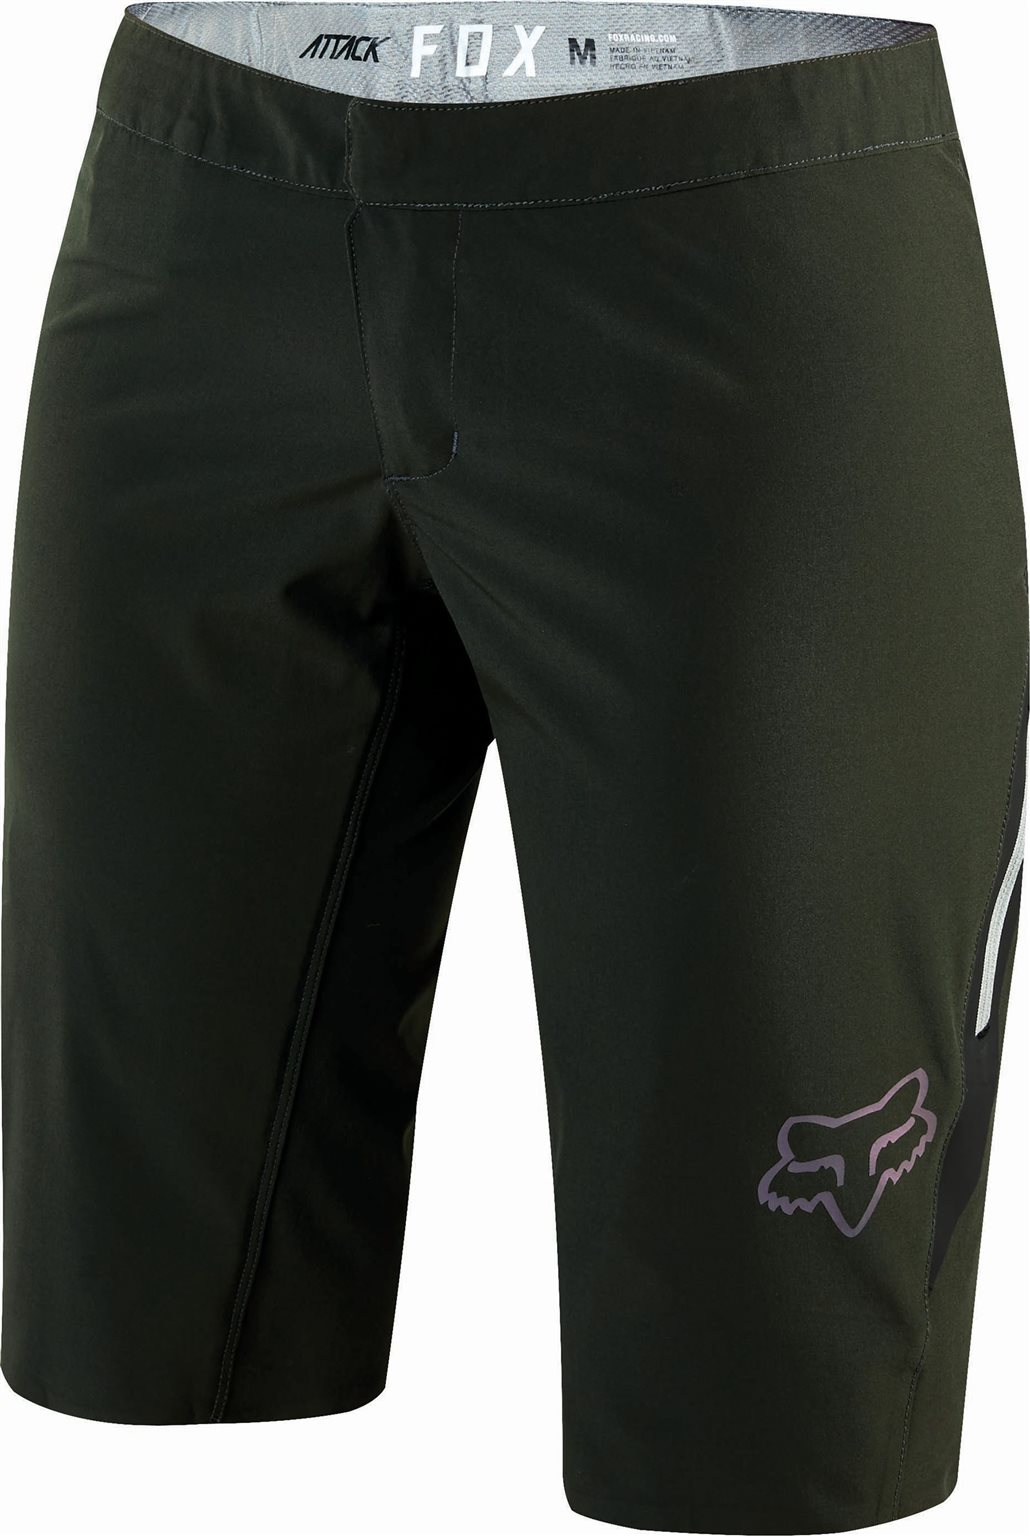 Fox nõi MTB short Attack AM